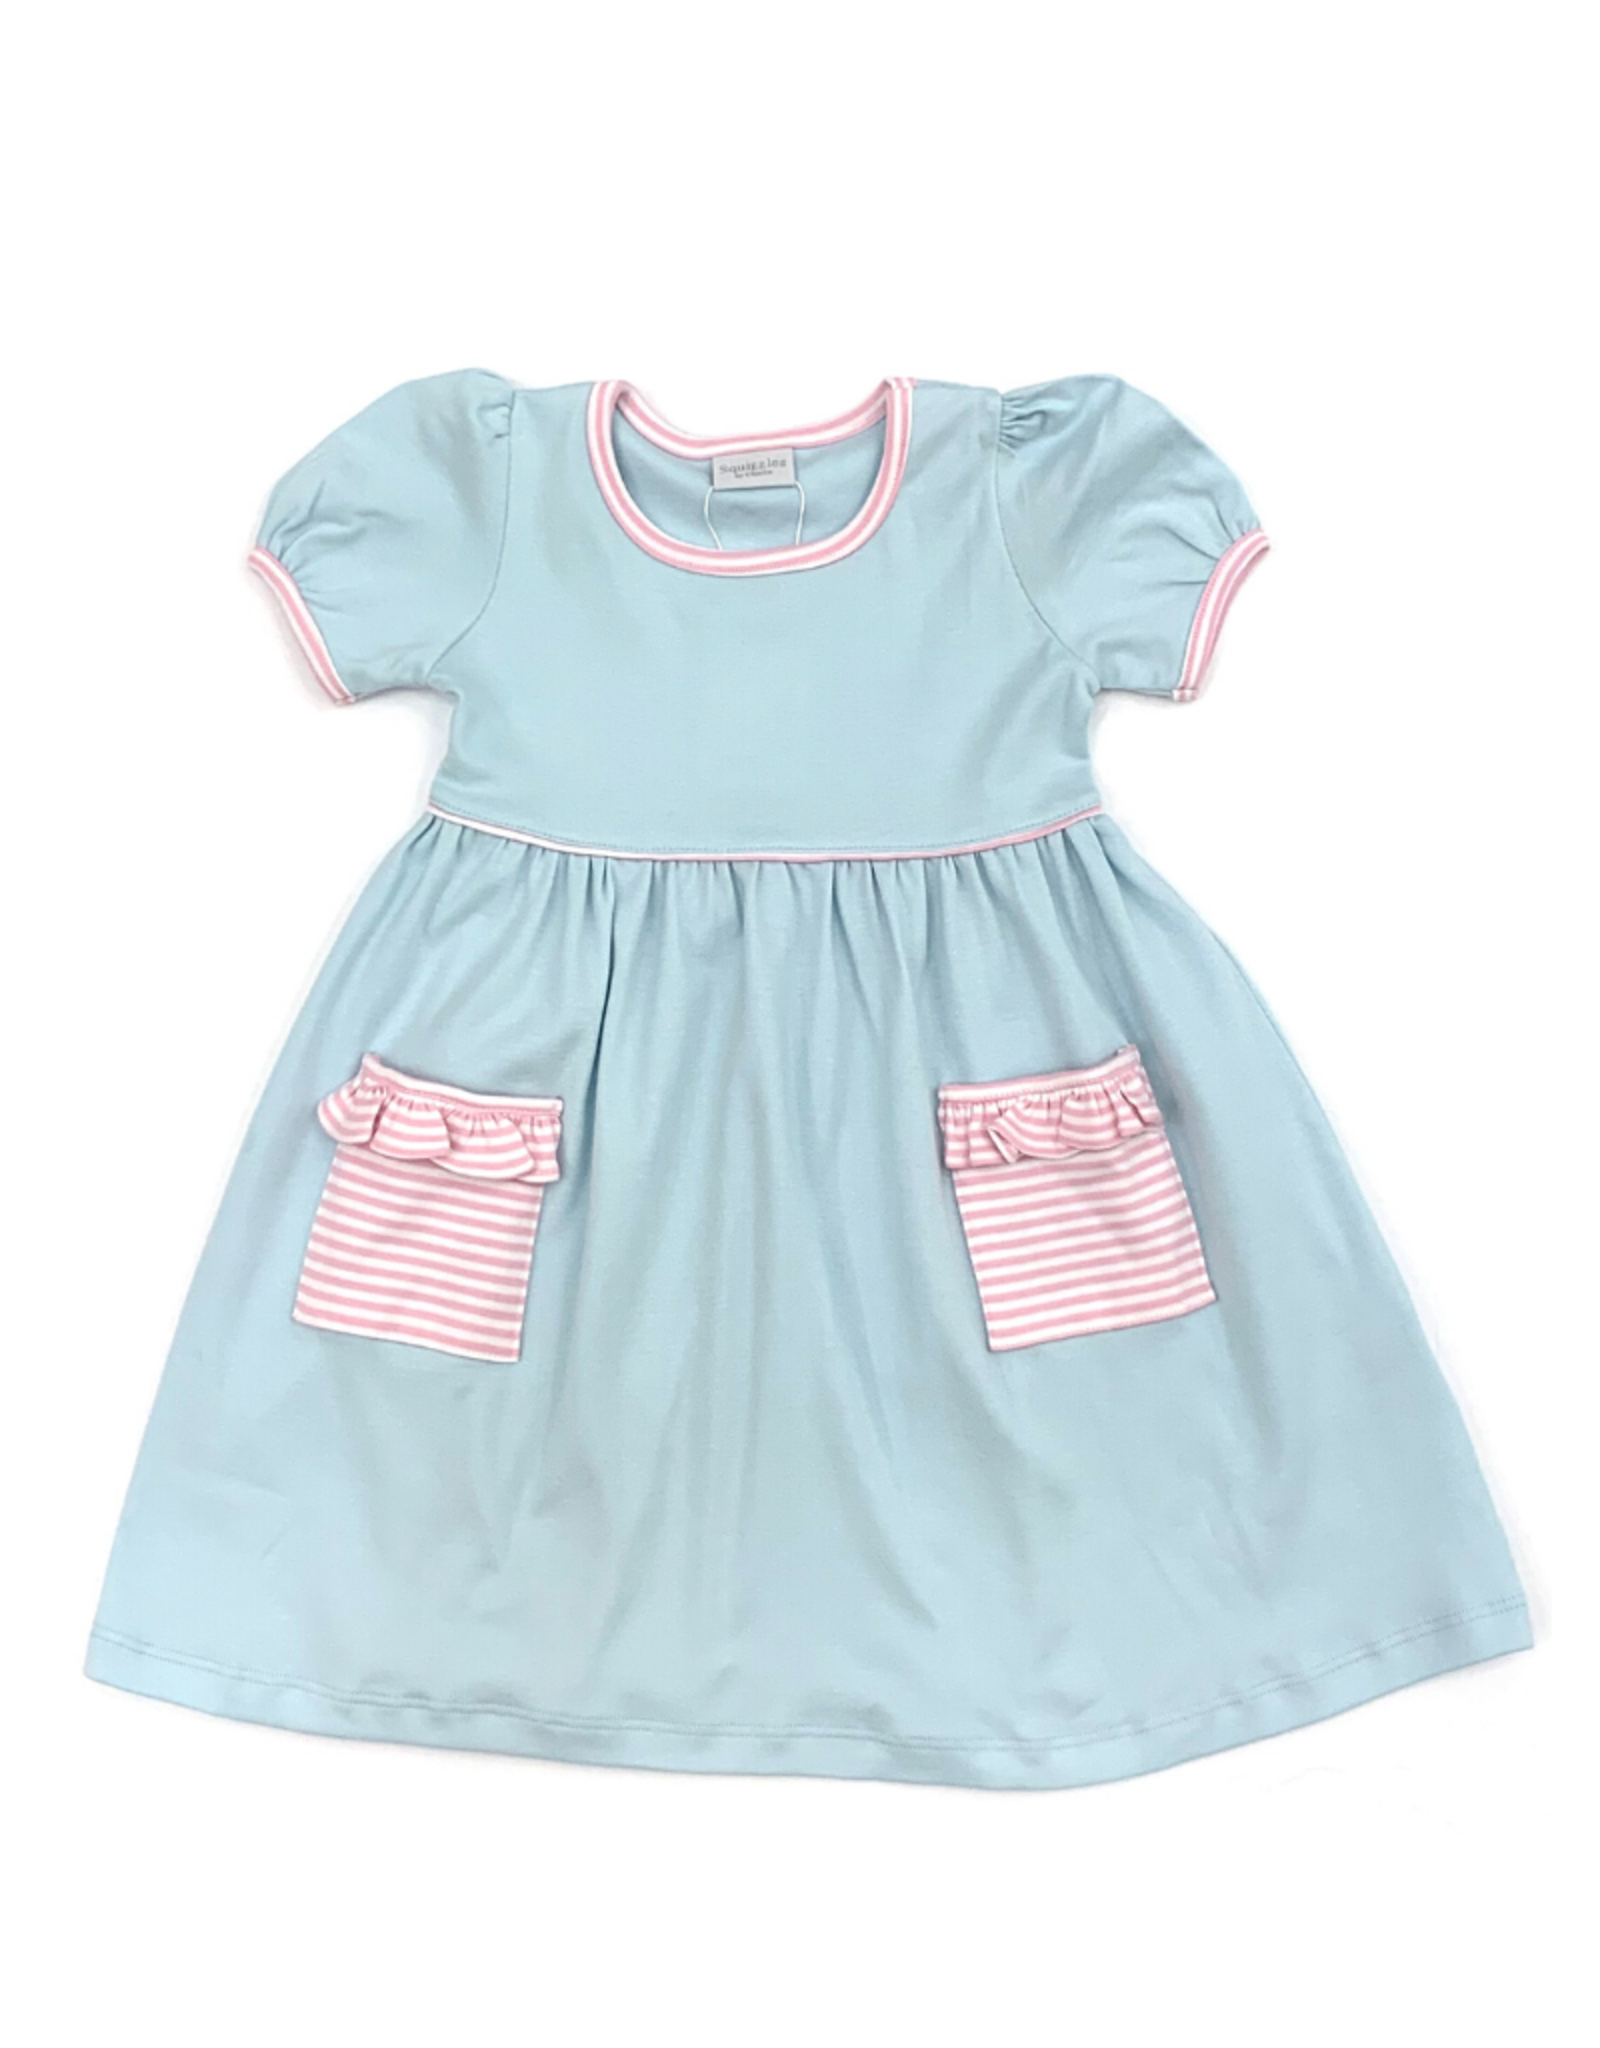 Squiggles Blue Dress With Pink Trim